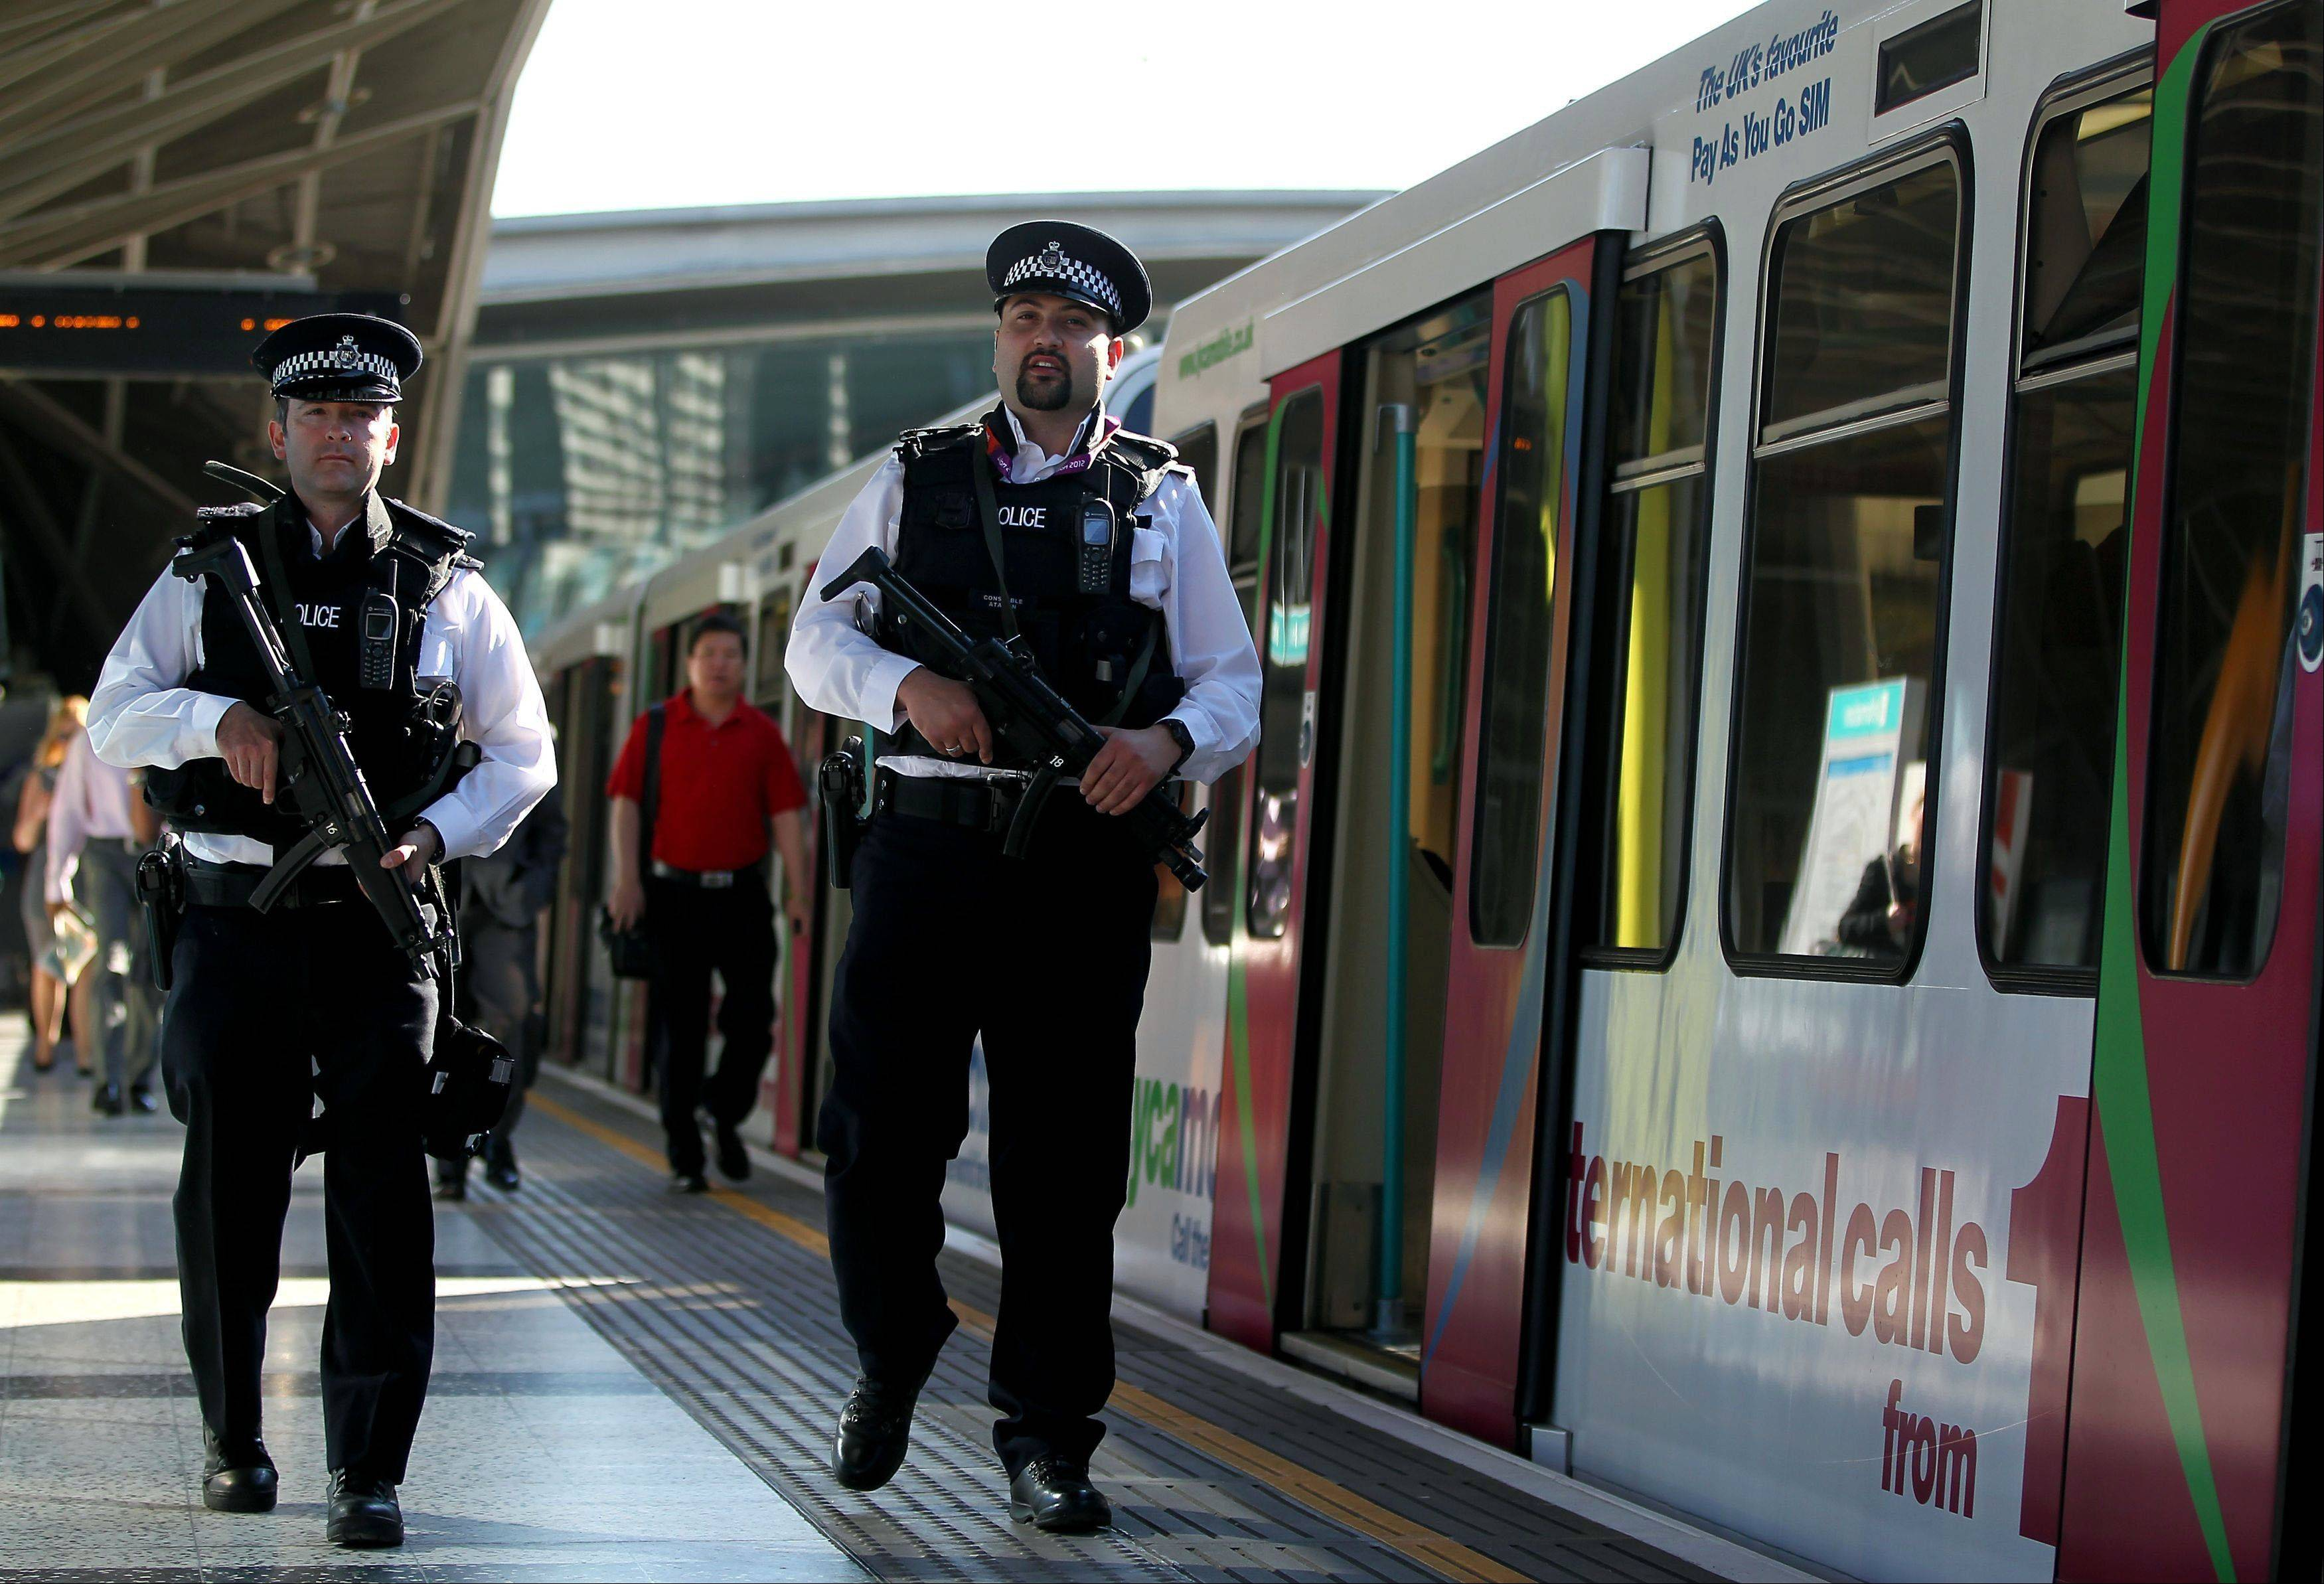 Armed police officers patrol at Stratford station near the Olympic Park on Monday in London. The city will host the 2012 Summer Olympics which opens Friday.